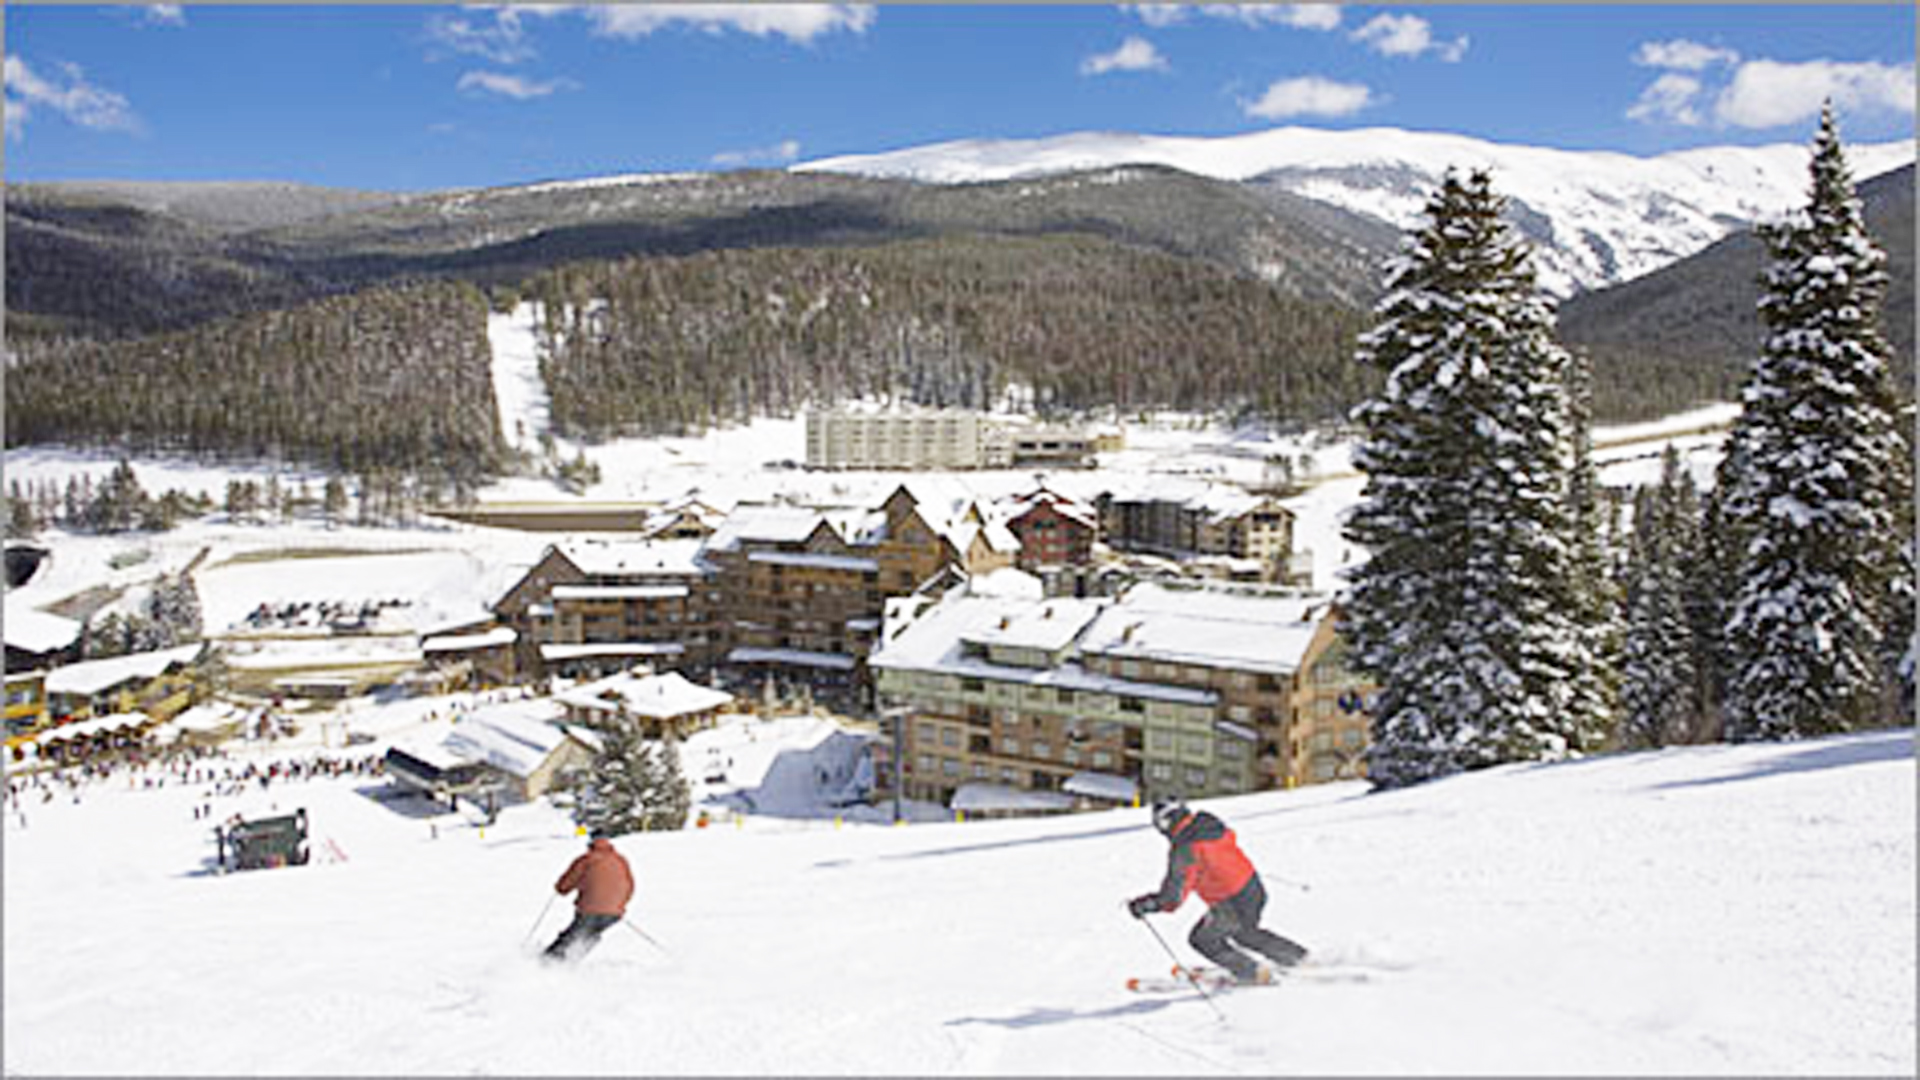 ski lodge in winter - photo #13